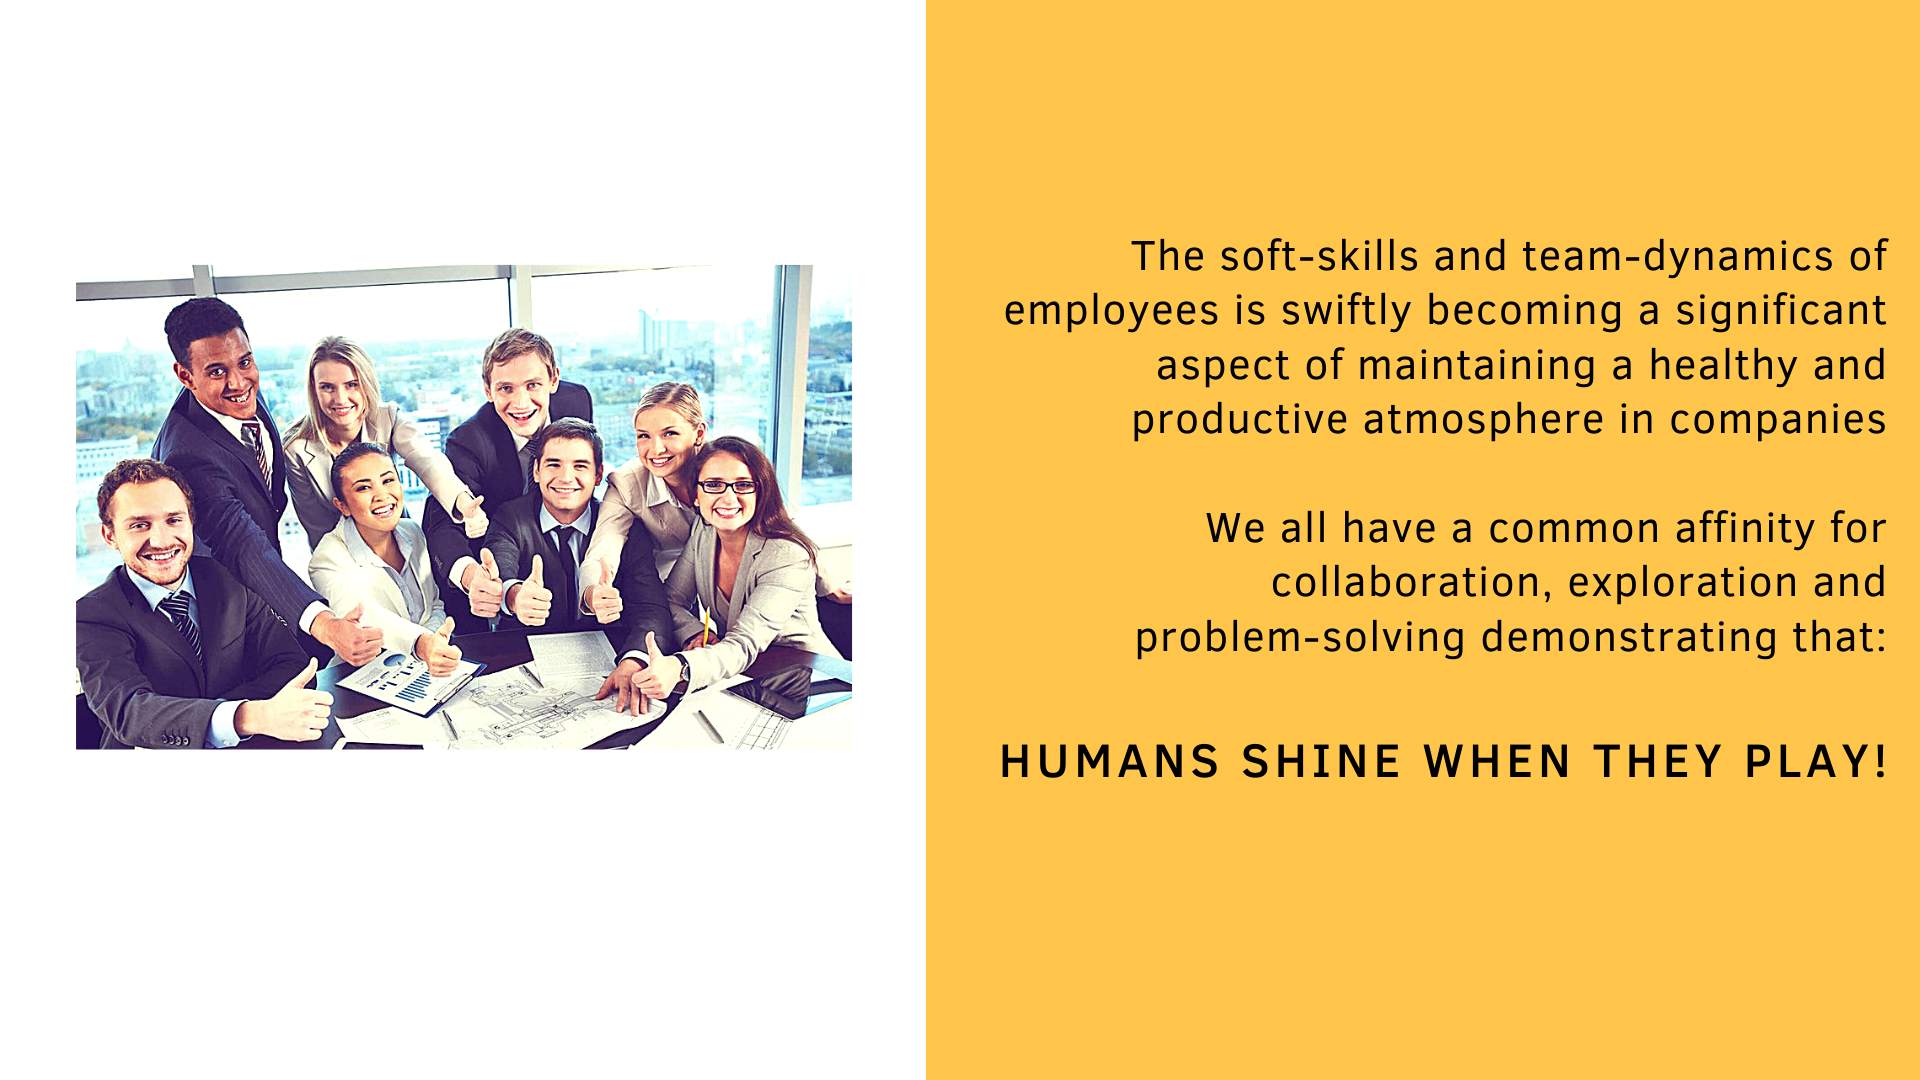 The soft-skills and team-dynamics of employees is swiftly becoming a significant aspect of maintaining a healthy and productive atmosphere in companies  We all have a common affinity for collaboration, exploration and problem-solving demonstrating that: Humans shine when they play!